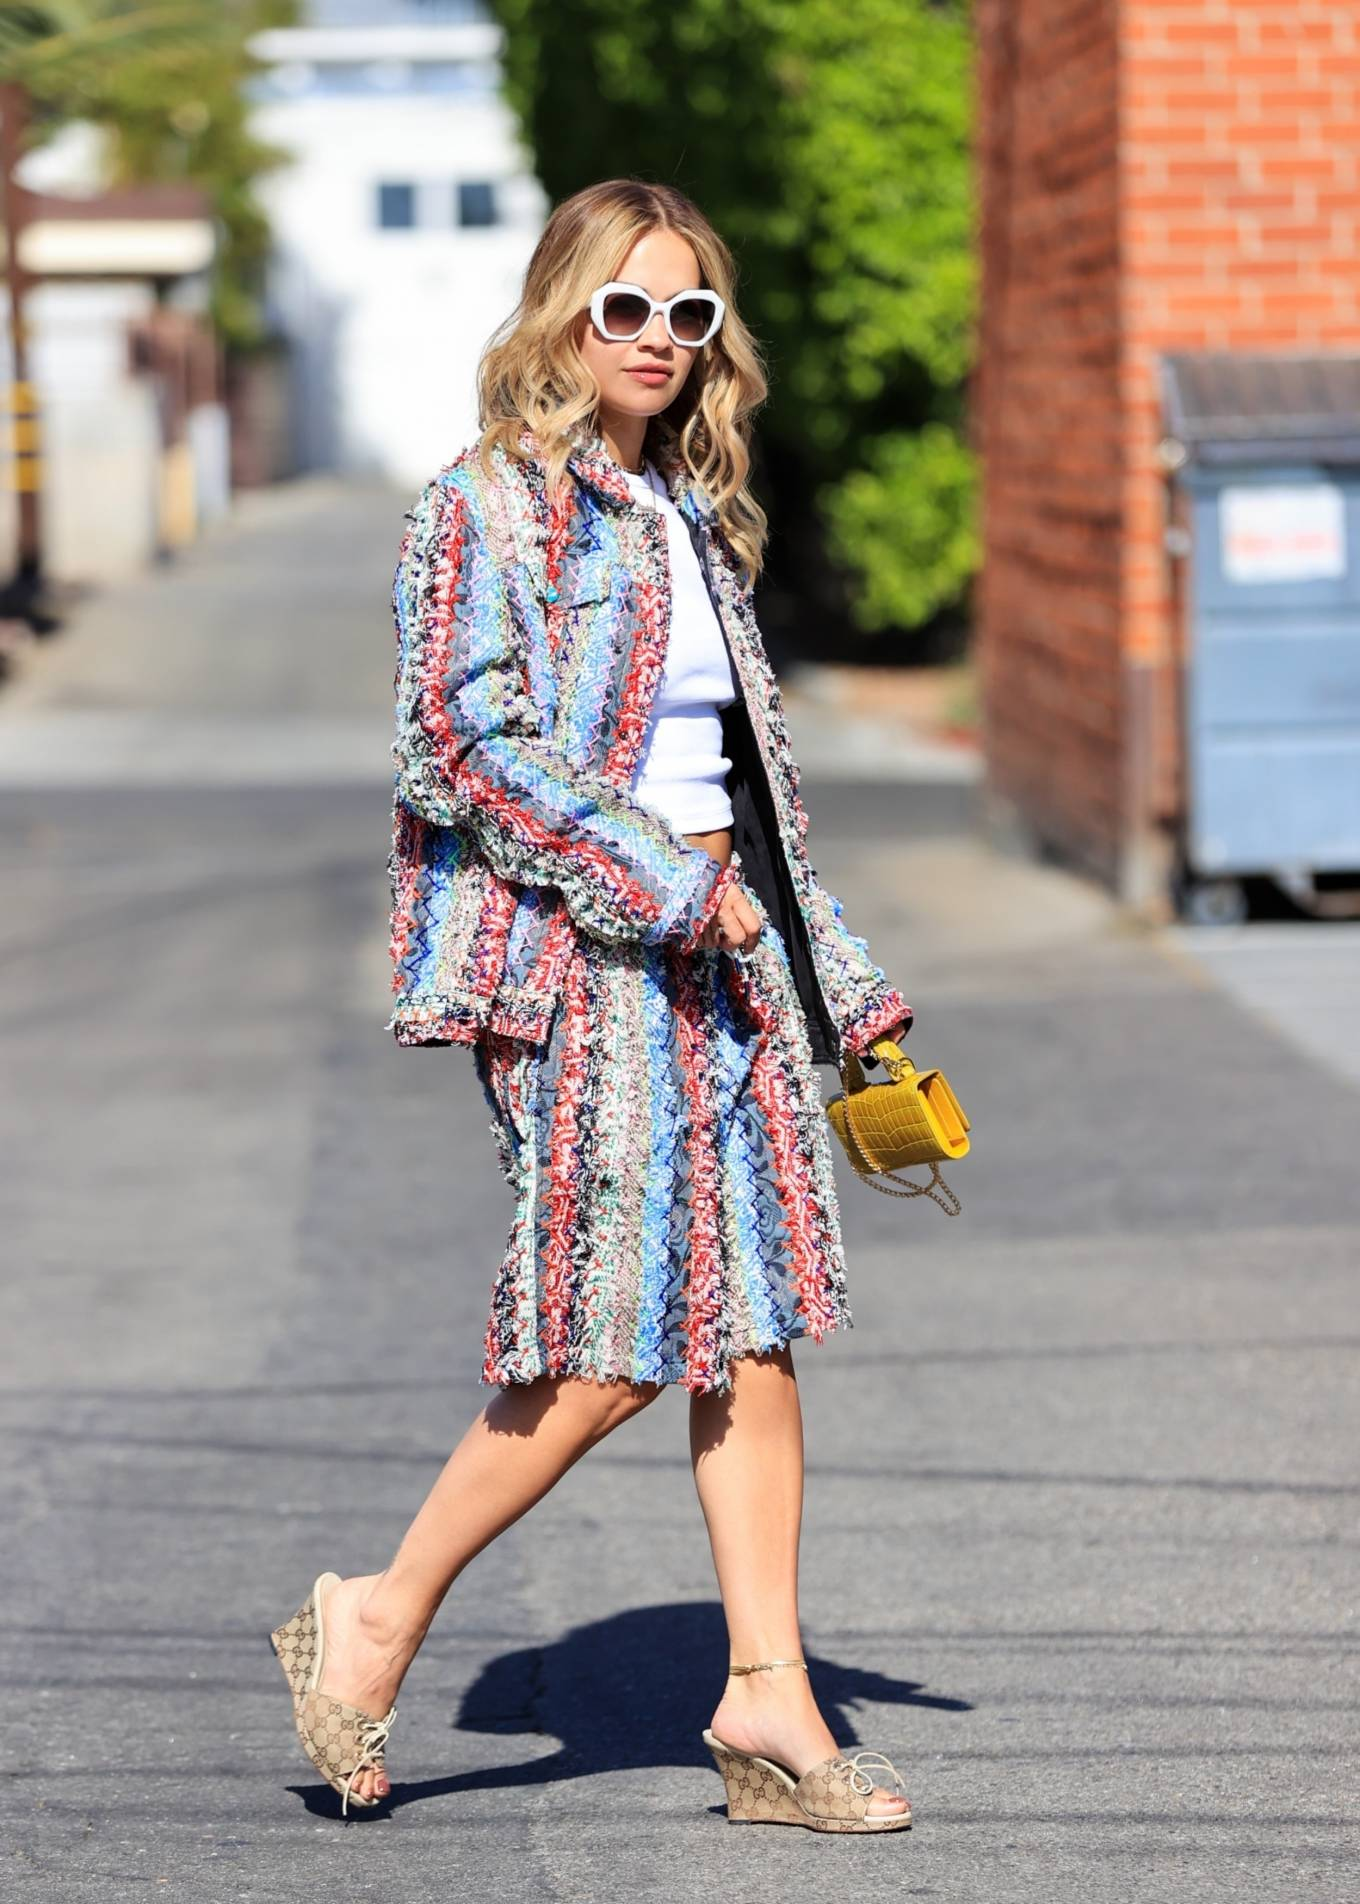 Rita Ora - Steps out in a colorful outfit in West Hollywood